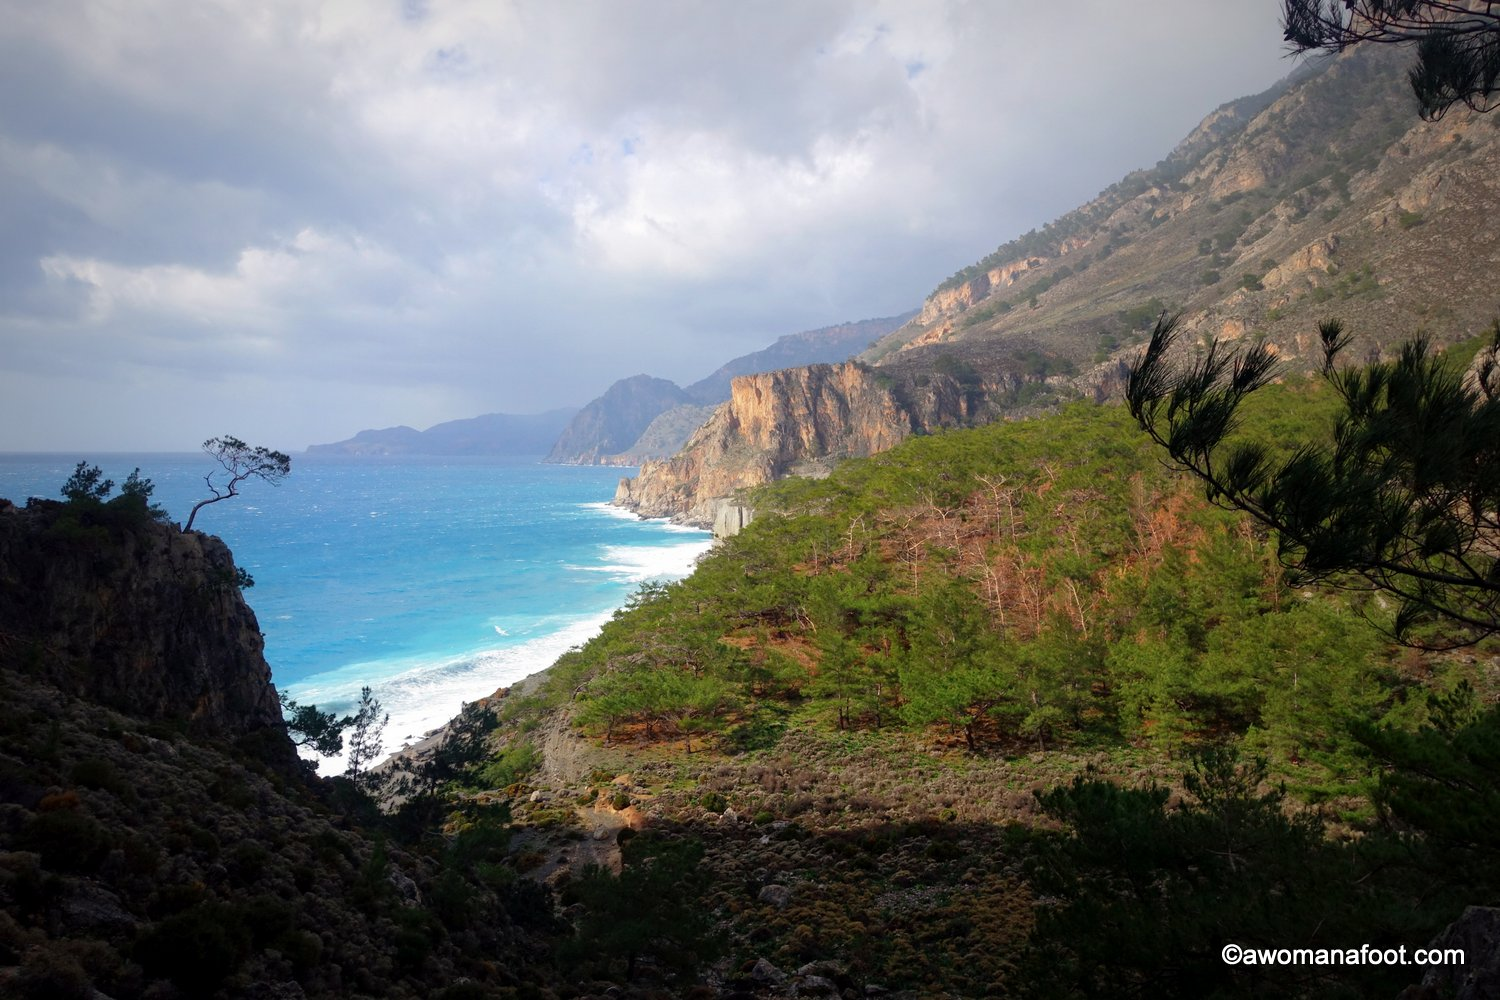 Sweat, tears, and stunning views - is that the most difficult hike on Crete? Check what my two days hiking solo from Sougia, through Domata to Agia Roumeli looked like! Awomanafoot.com | female solo hiking | #hiking | #solo | E4 trail | #E4trail | #Crete | #Greece | hiking trails | backpacking | trekking |